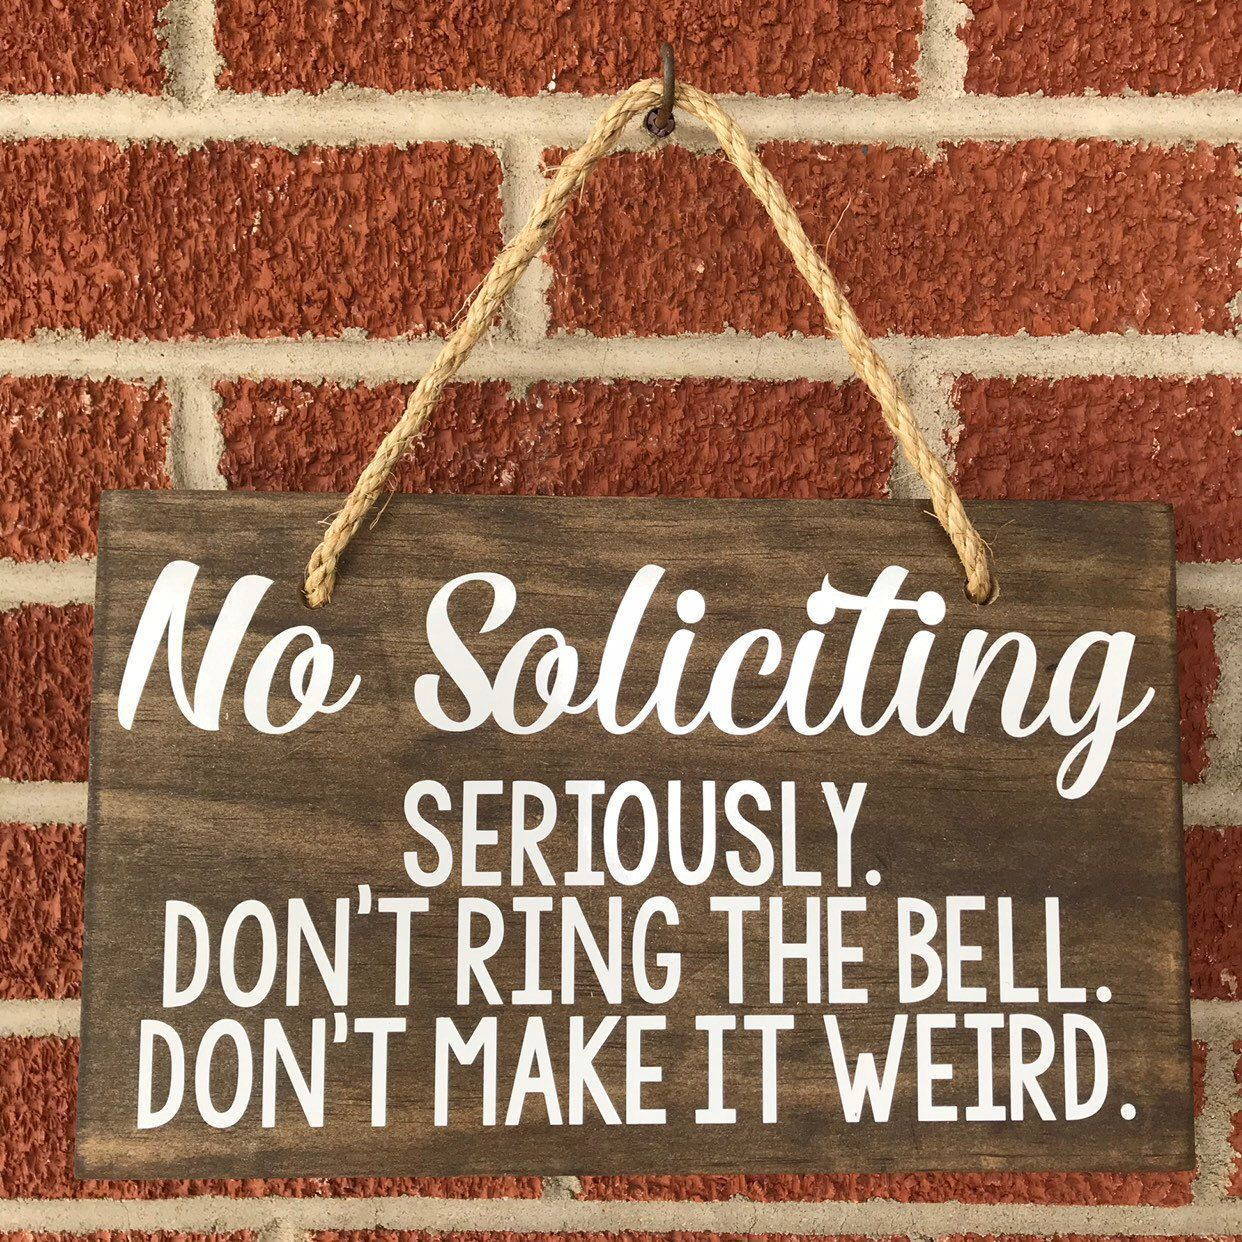 Funny No Soliciting Sign, Hanging Wooden Sign, Don't Ring The Bell #nosolicitingsignfunny